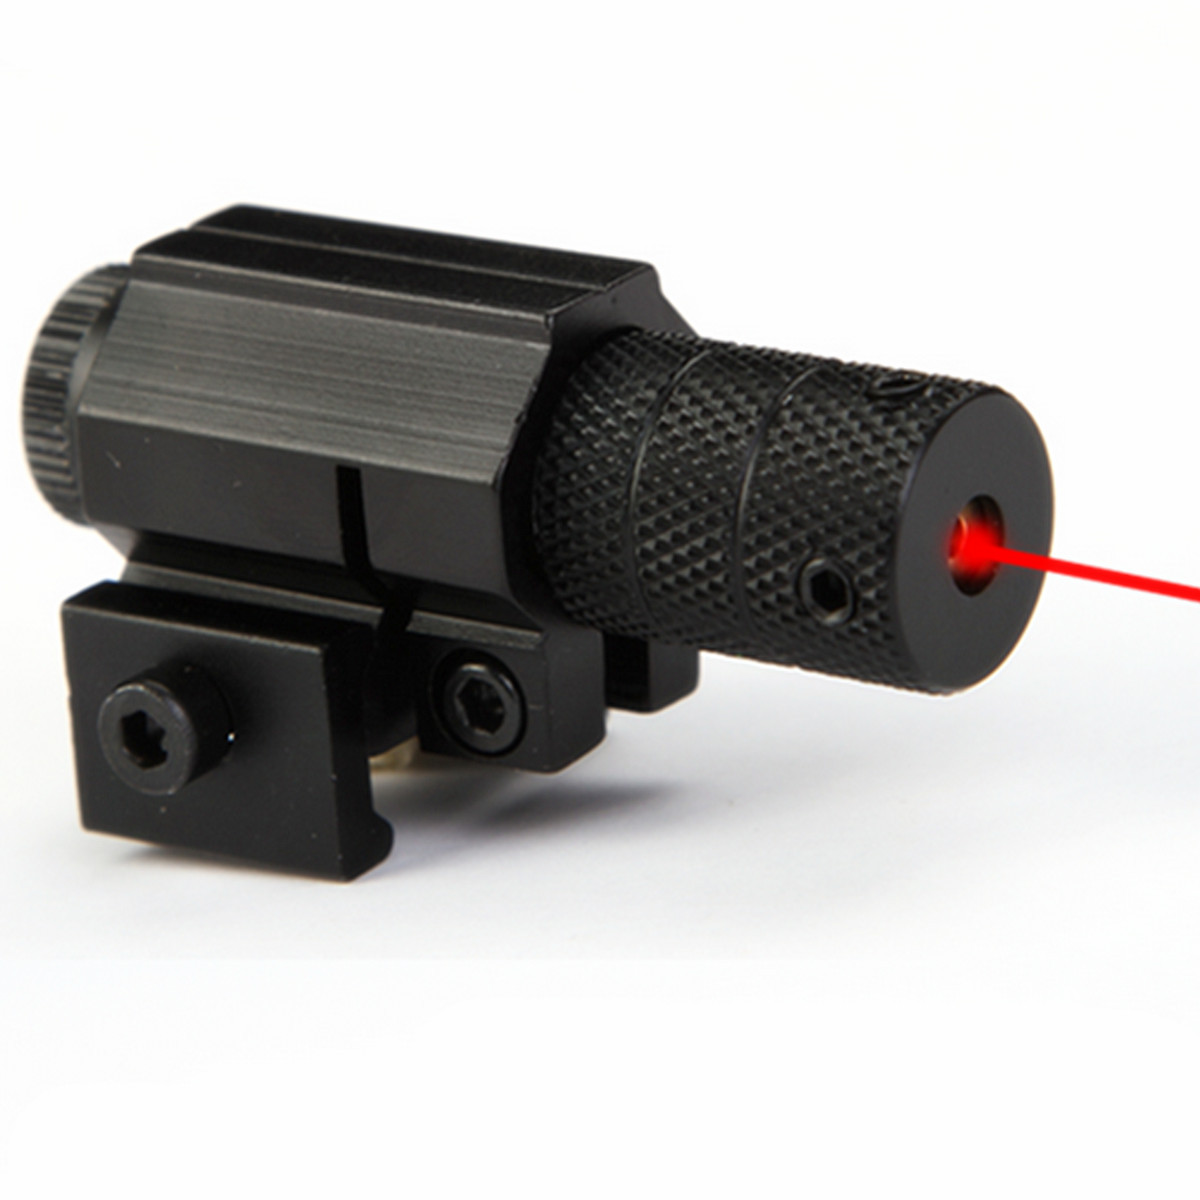 100m 835-655mm Tactical Aiming Red Beam Dot Laser Bore Sight Scope With Mount for Gun Rifle Pistol adjustable laser tube holder for diameter 50 80 mm co2 laser tube